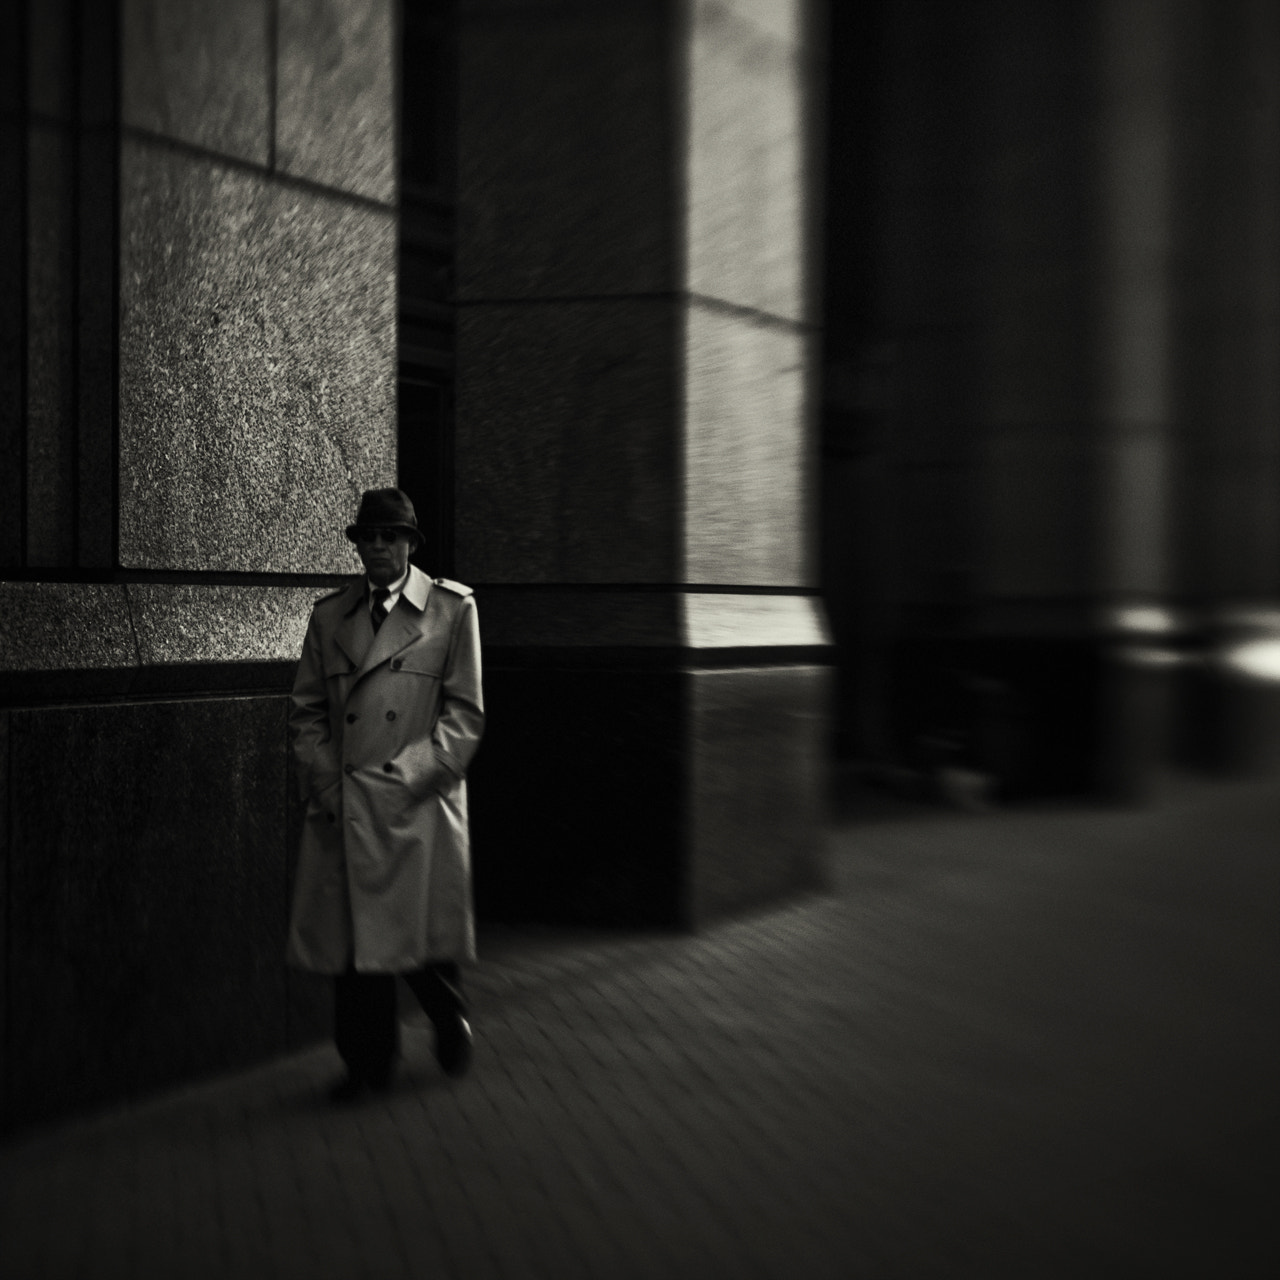 Photograph the informant by Brian Day on 500px